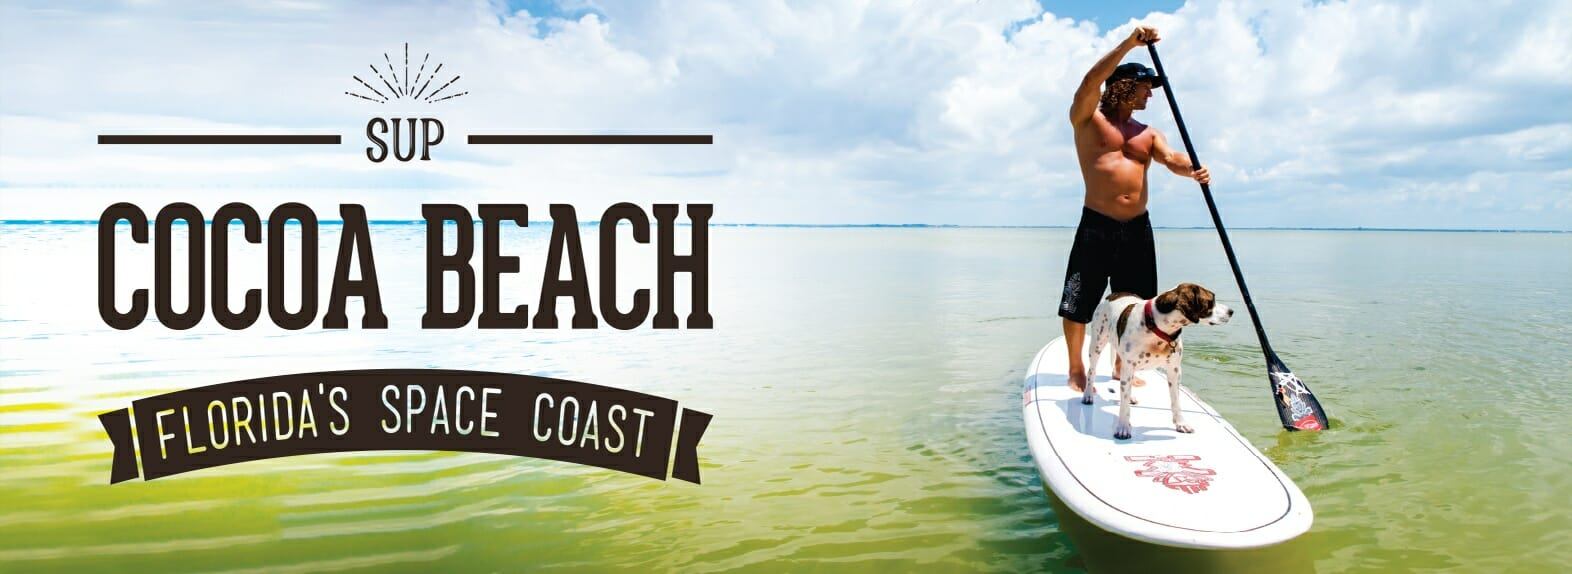 Space Coast Tourism Billboard - Girard Middleton